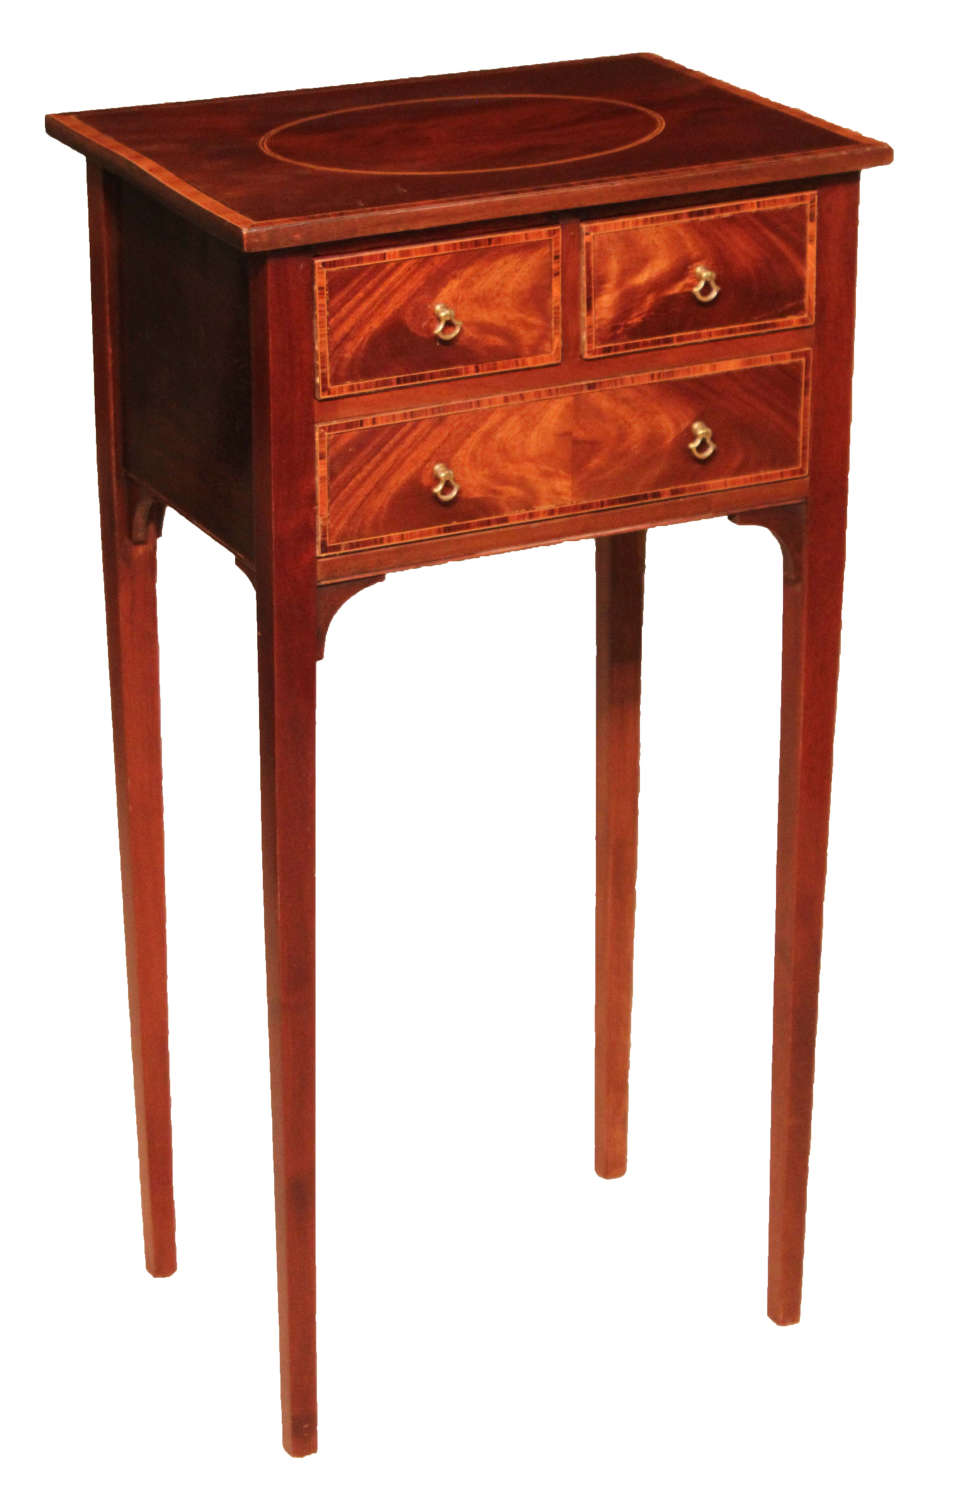 The Quality Edwardian Mahogany Inlaid Side Table.